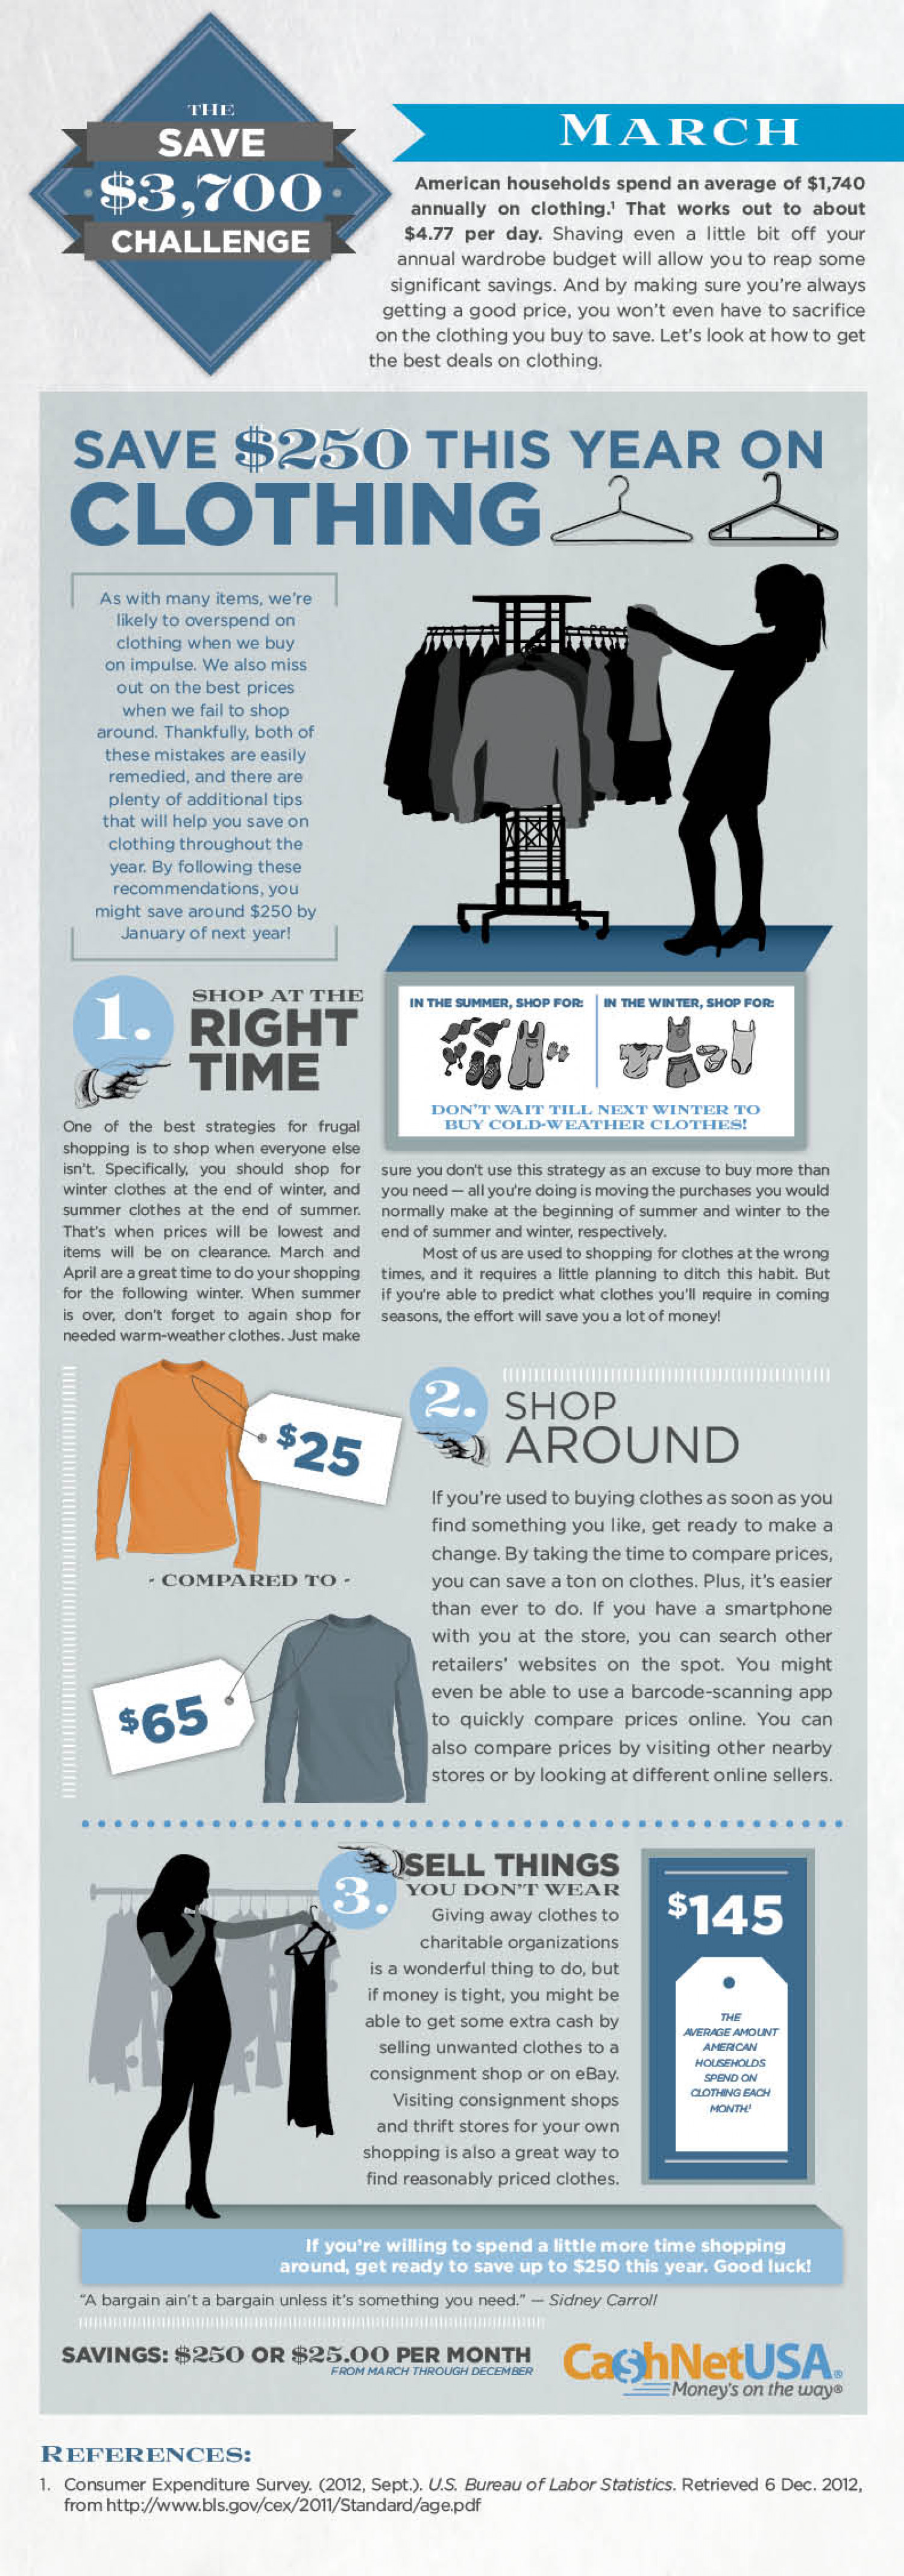 Save $3,700 Challenge - March: Clothing Budget Infographic